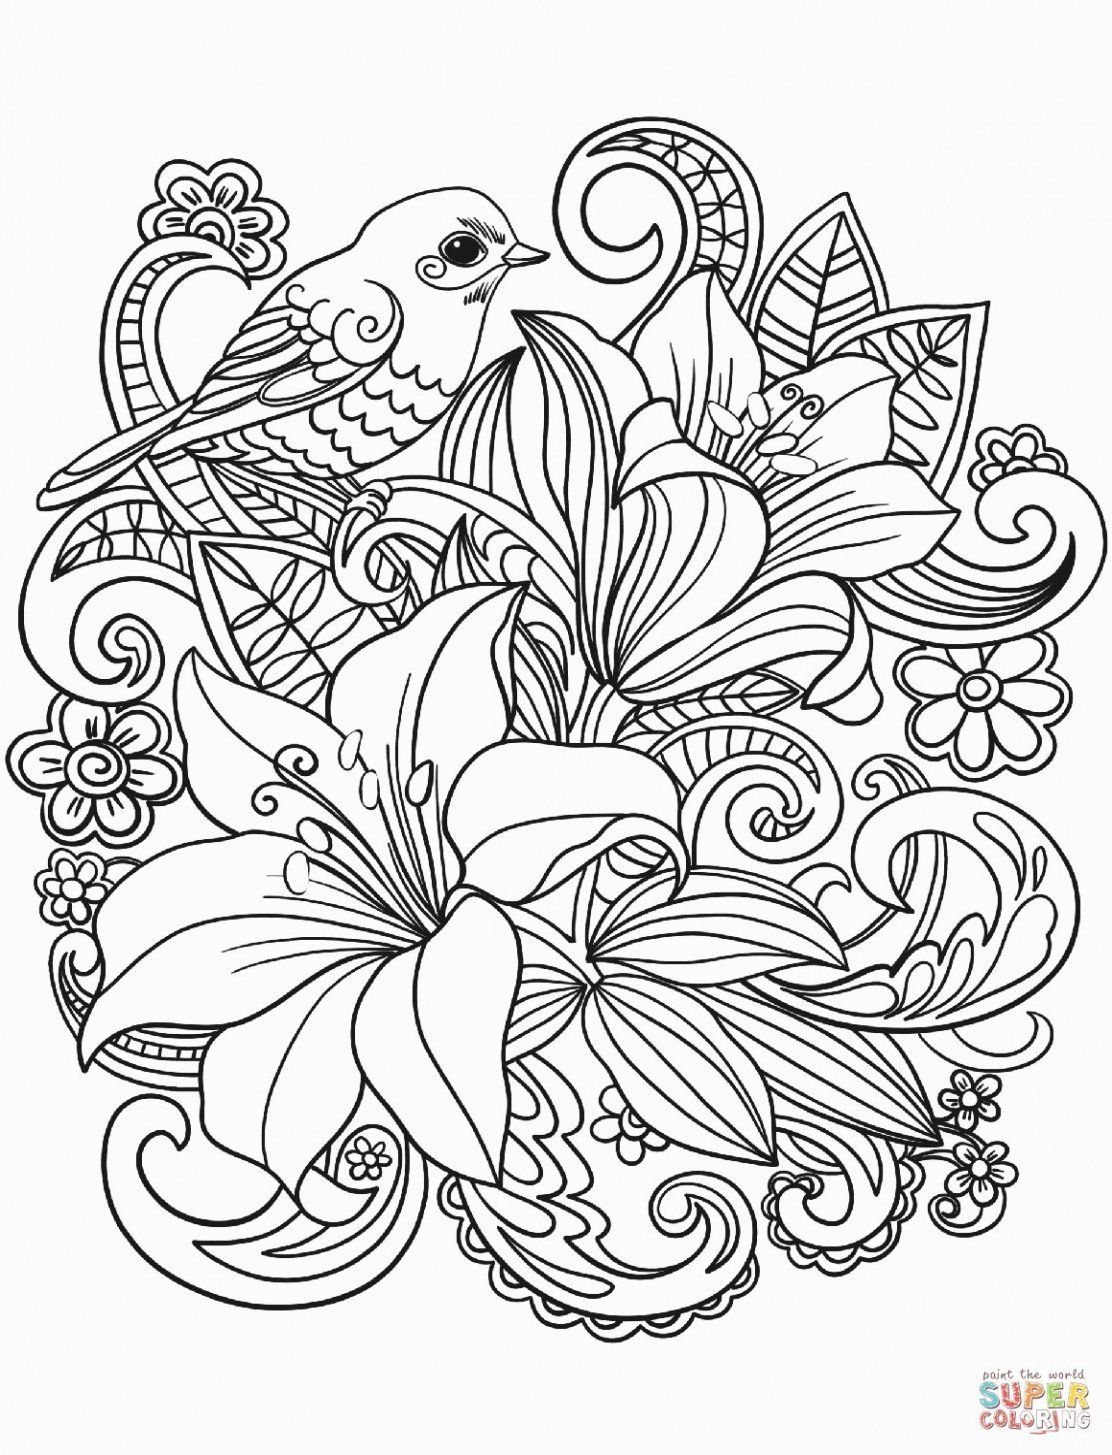 Coloring Pages Flowers Hard Beautiful 30 Coloring Pages For Teens Printable Flower Coloring Pages Mandala Coloring Pages Flower Coloring Sheets